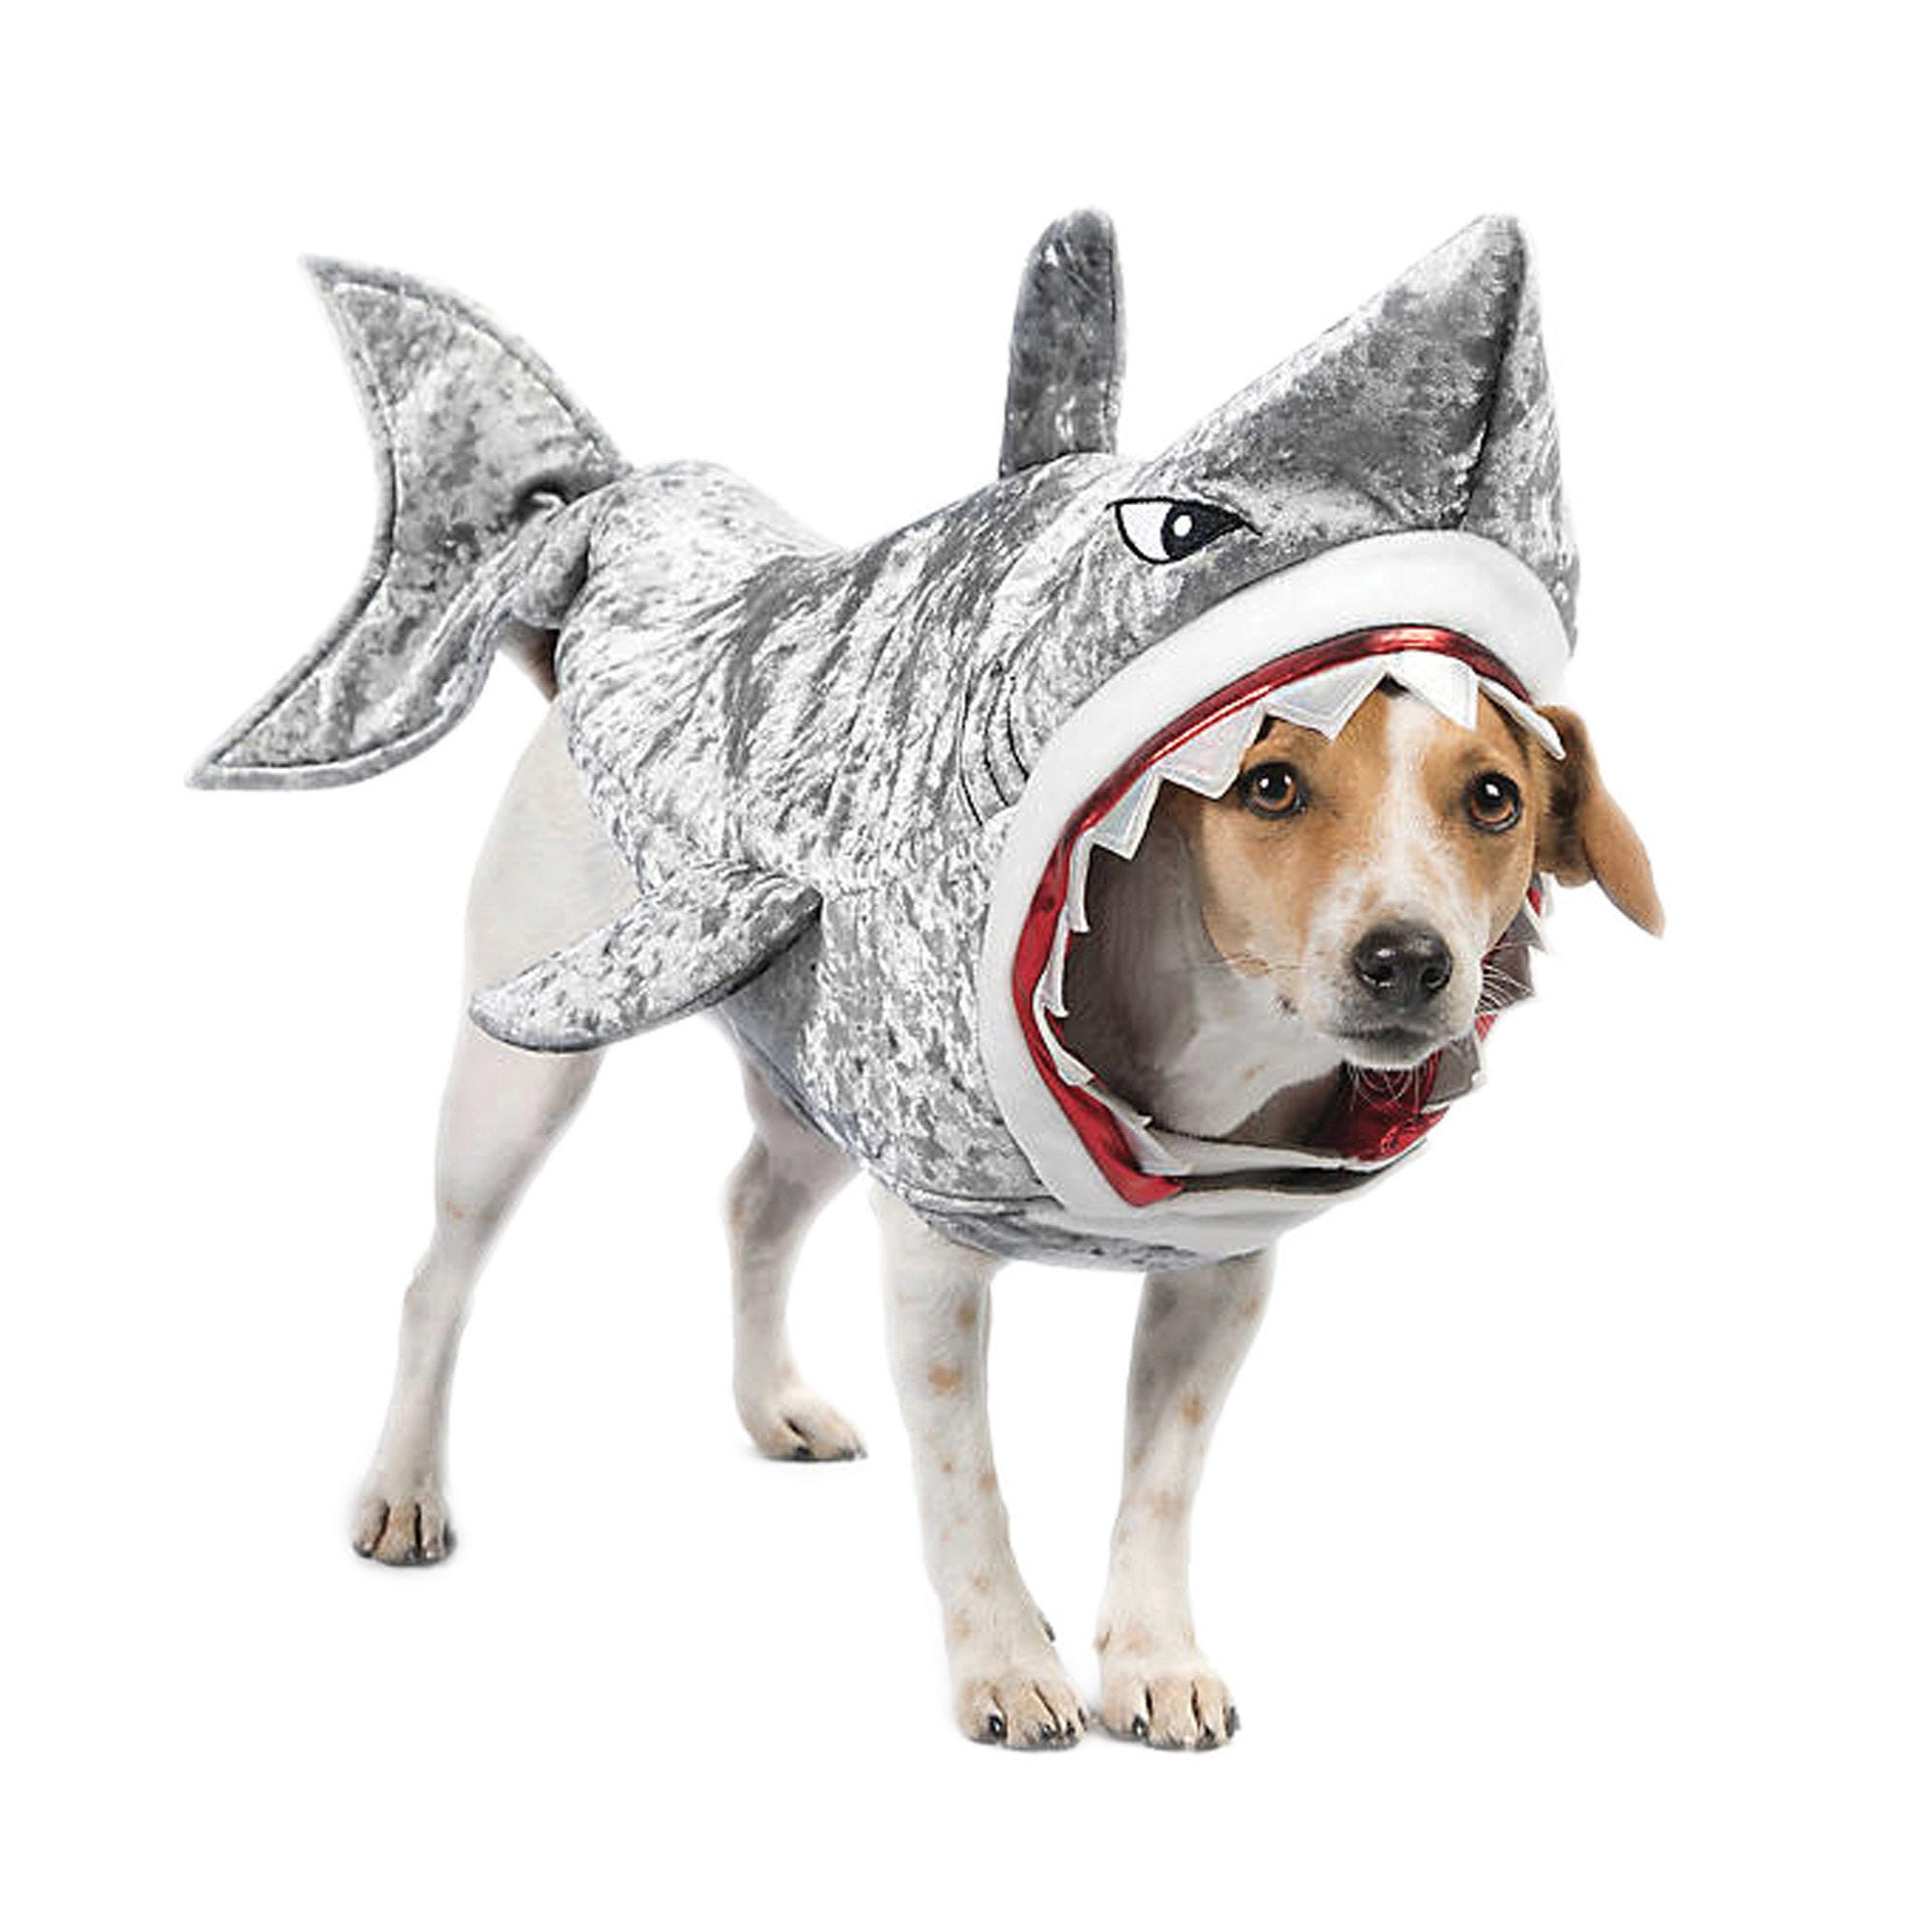 Shark Pet Costume - Qty 4